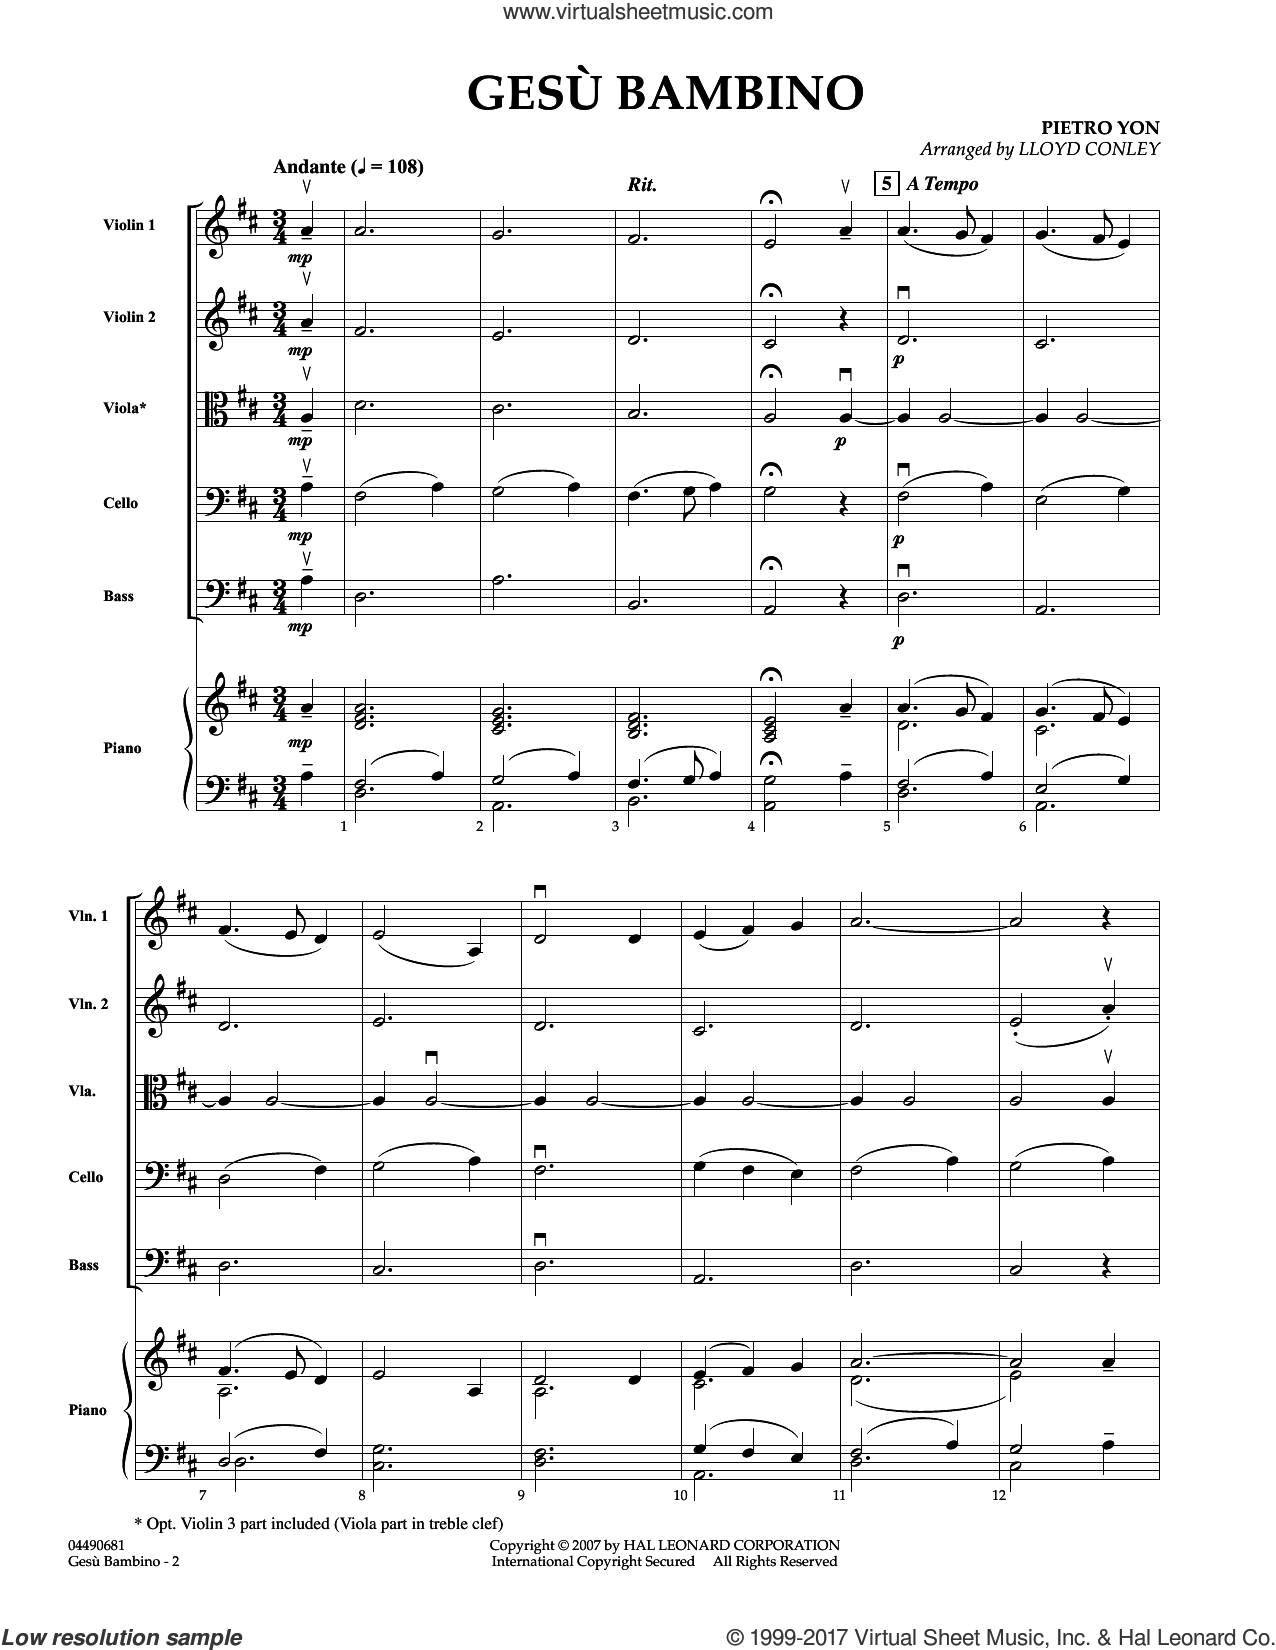 Gesu Bambino (COMPLETE) sheet music for orchestra by Lloyd Conley, Frederick H. Martens and Pietro Yon, intermediate